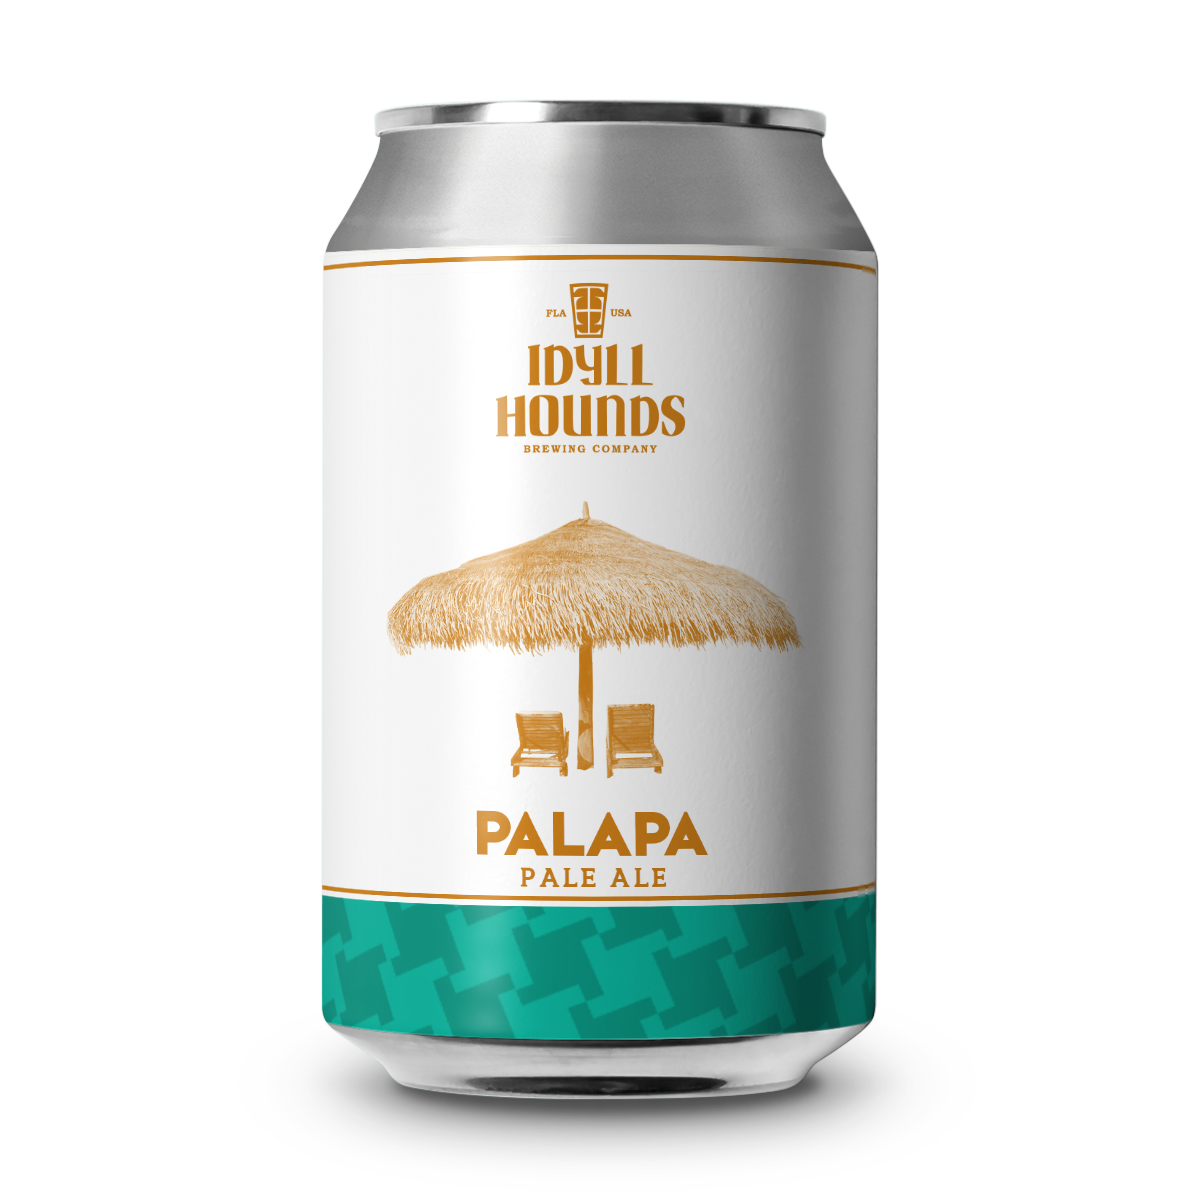 https://www.idyllhoundsbrewingcompany.com/wp-content/uploads/2021/02/Palapa-Can-Iso.png